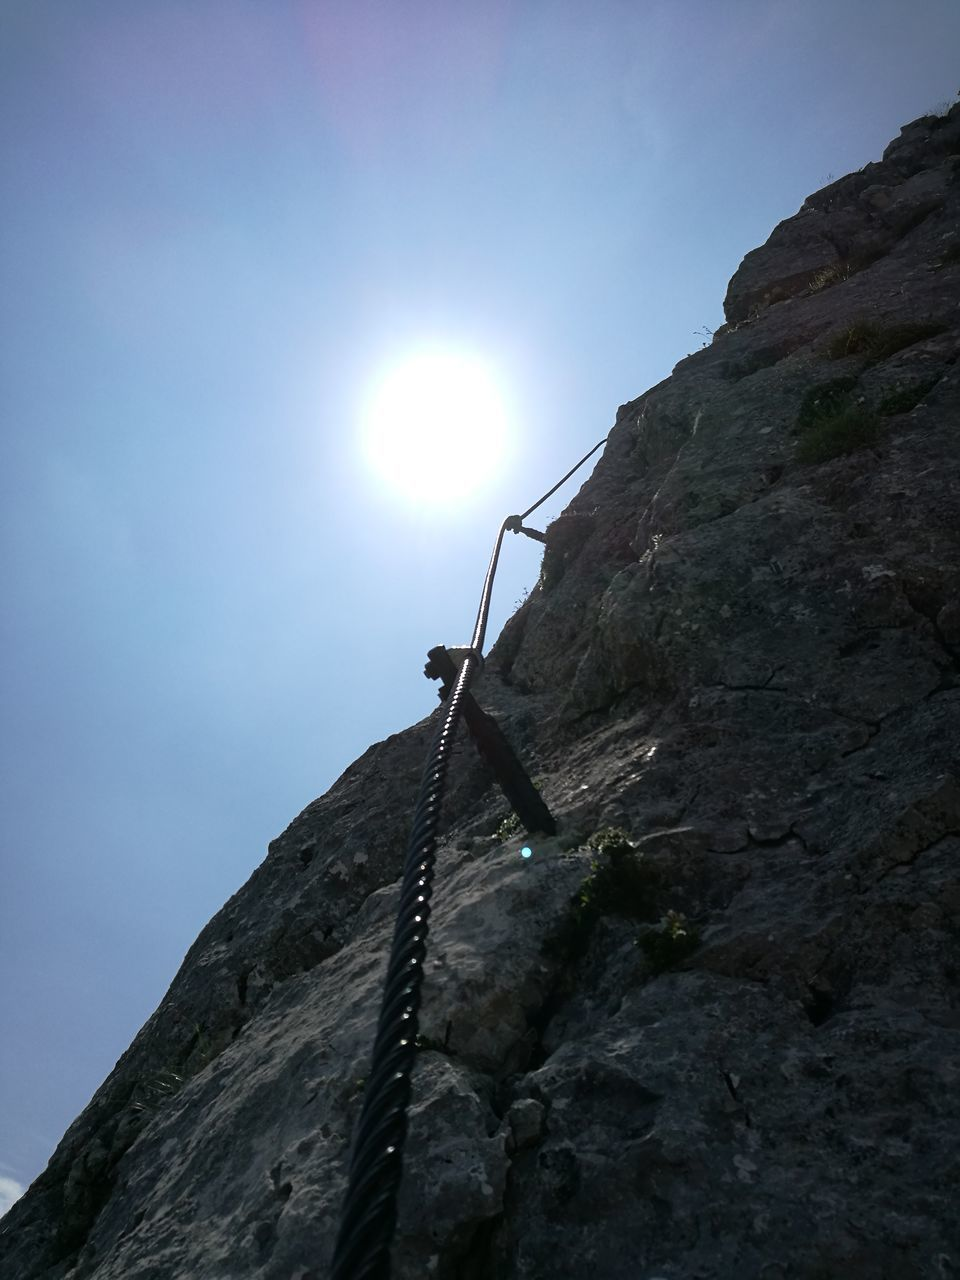 climbing, low angle view, rock climbing, rock - object, rope, lens flare, sun, sunlight, mountain, adventure, cliff, outdoors, strength, day, extreme sports, nature, challenge, sky, rock face, clear sky, no people